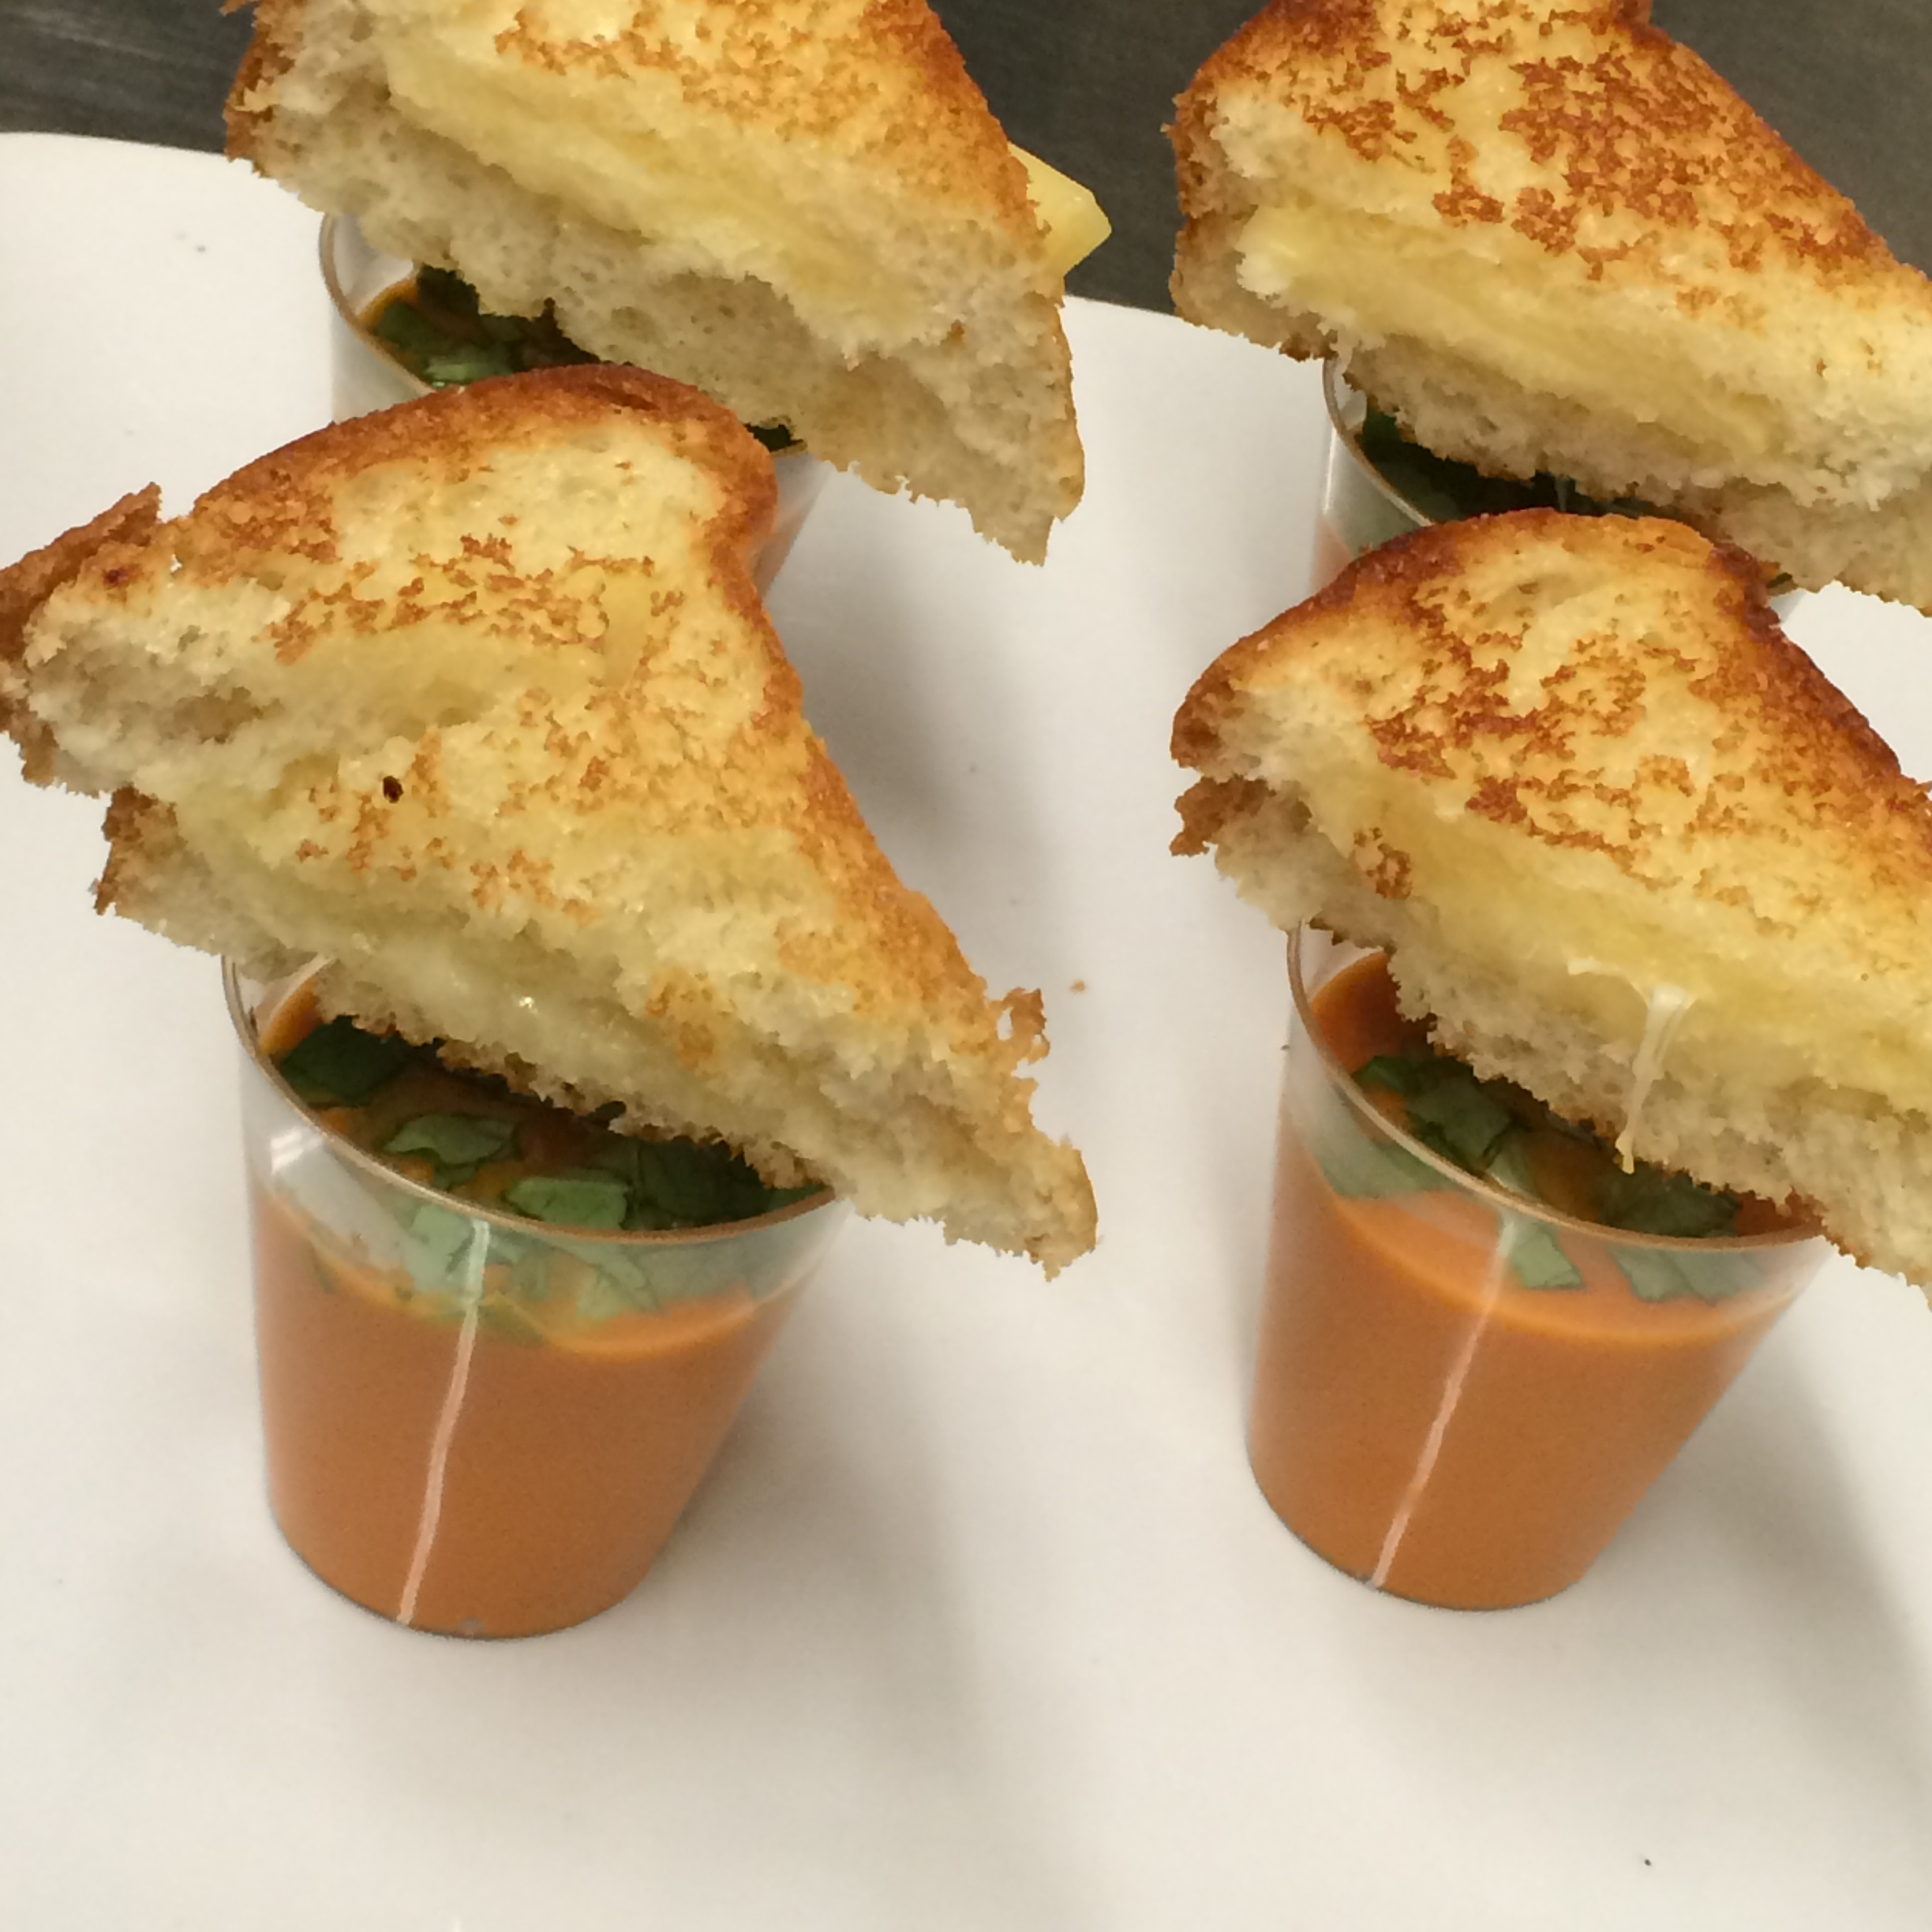 Tomato soup shooters served with mini grilled cheese sandwiches made from our creamy tomato soup recipe  Creamy Tomato Soup Recipe Homemade Soup Day: Creamy Tomato Soup Recipe 2015 07 30 18